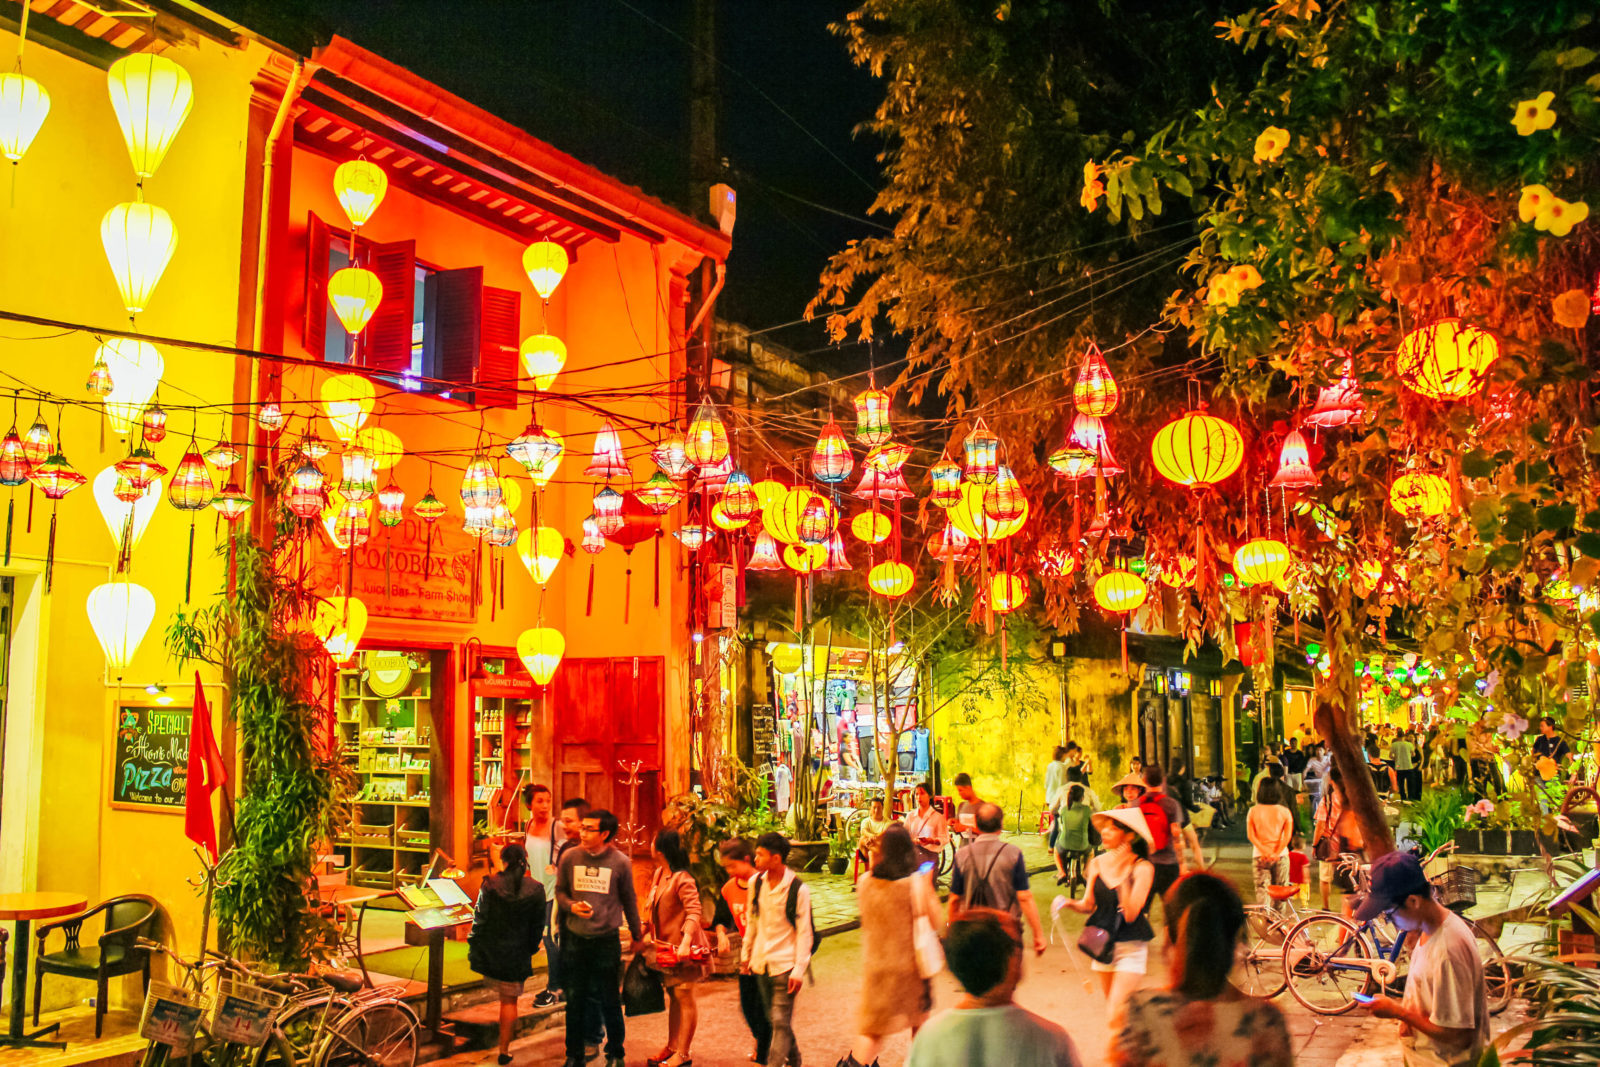 Best nightlife experiences in Hoi An - Take Stunning Photos at Night